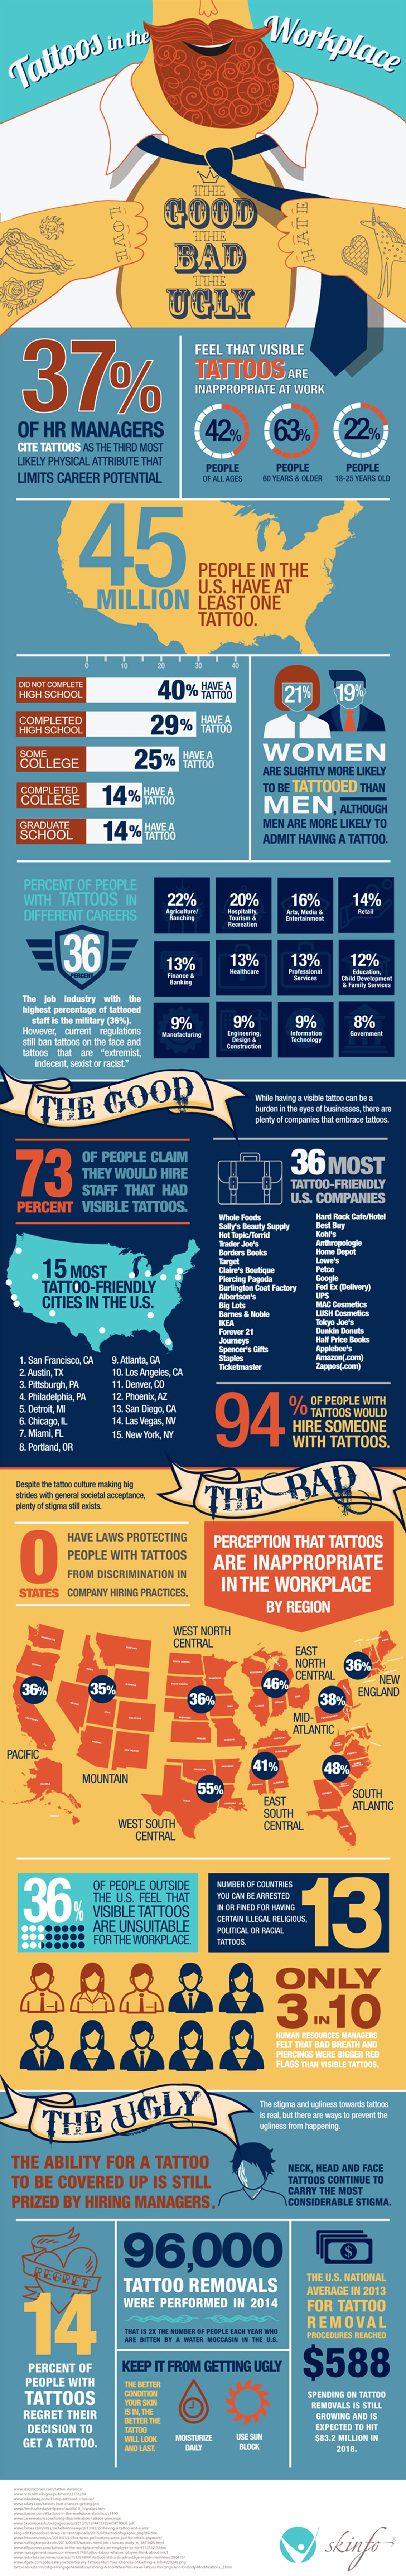 Tattoo Acceptance in the Workplace Infographic